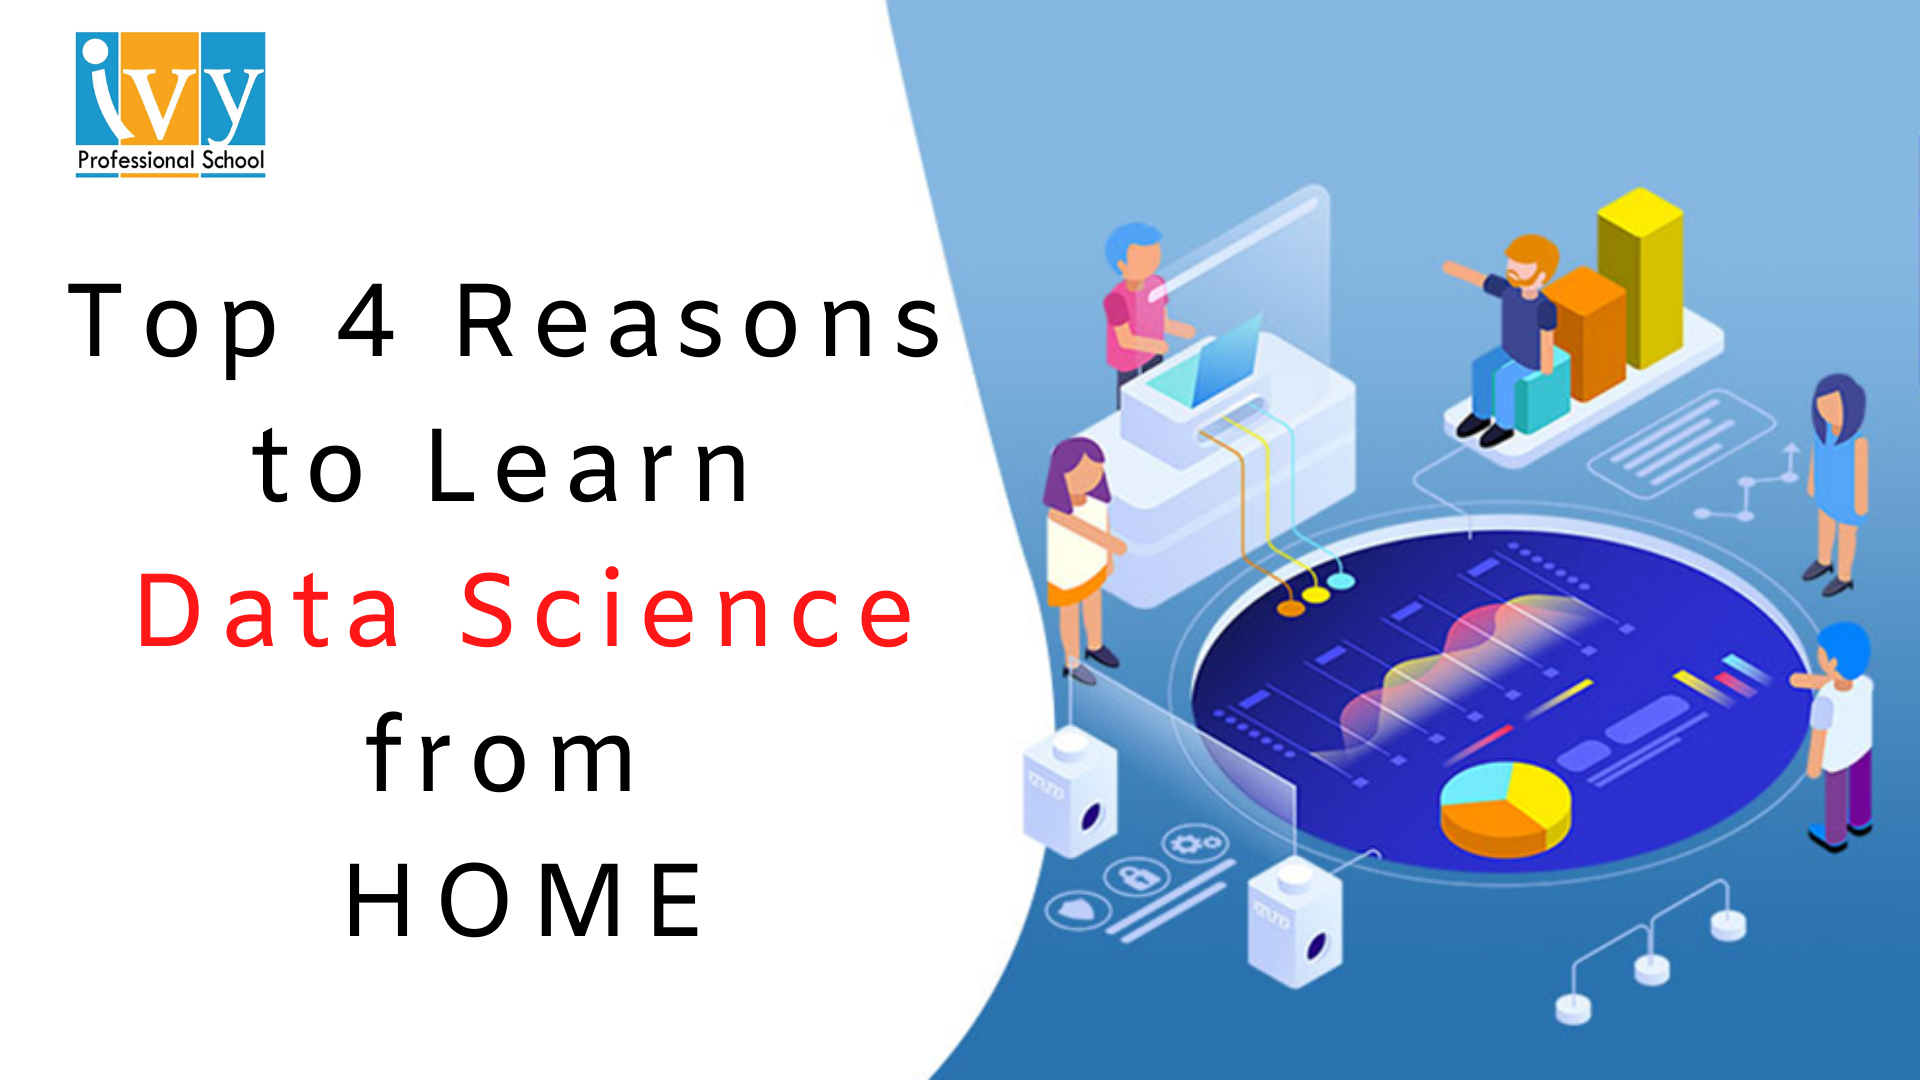 LEARN DATA SCIENCE FROM HOME